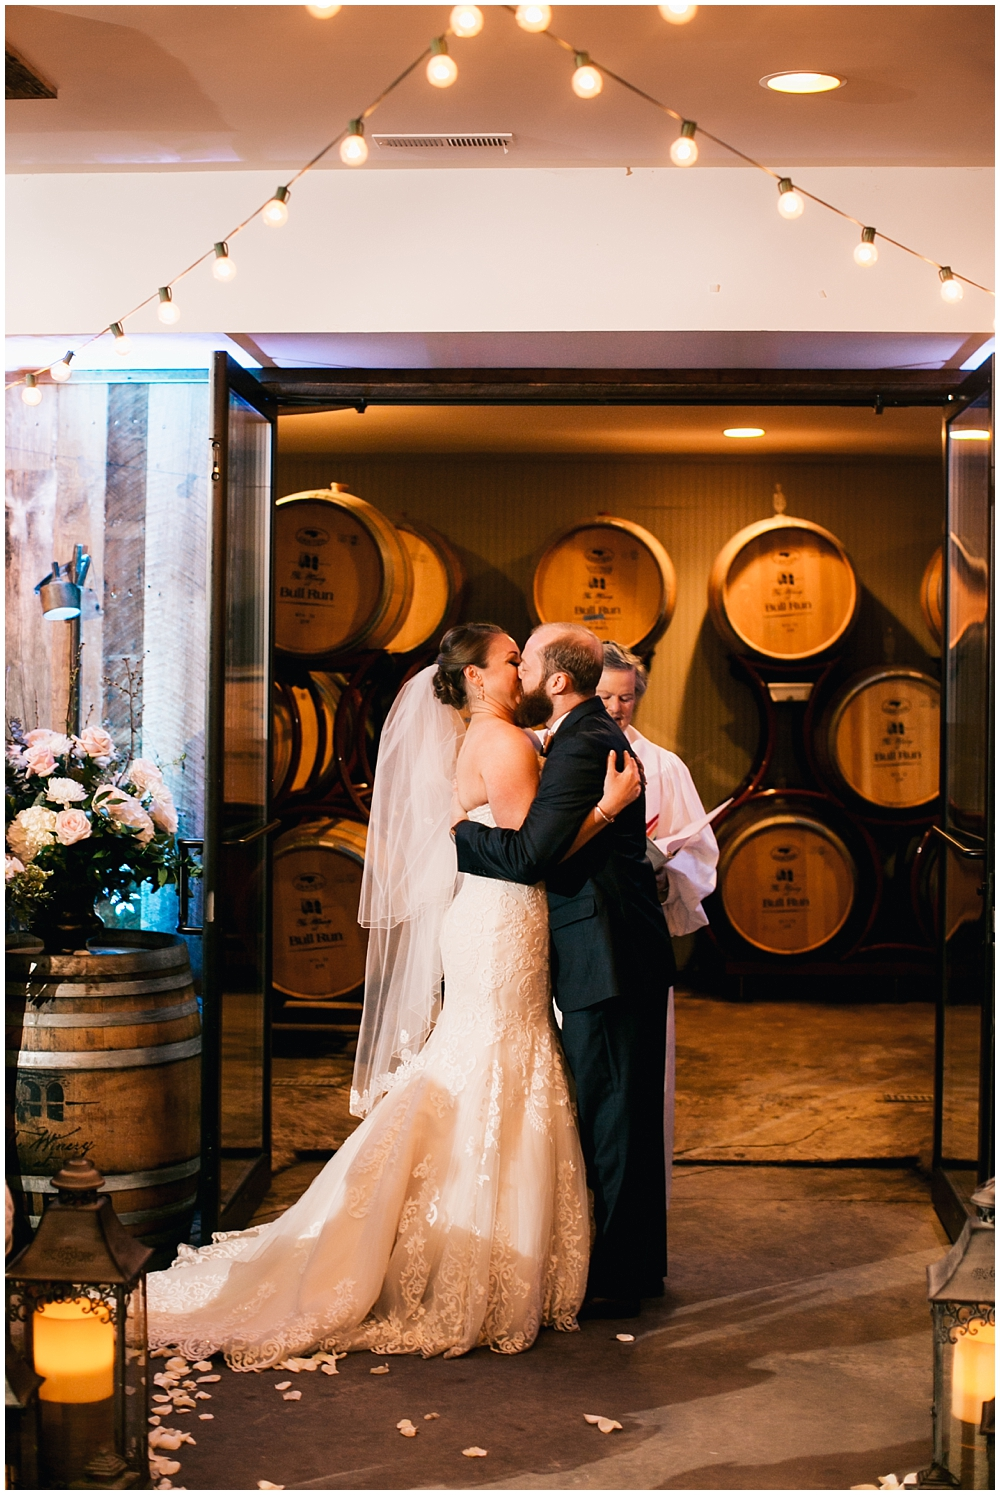 PattengalePhotography_StLouis_Wedding_Photographer_Boho_Hipster_Urban_Style_StCharles_Missouri_BullRunWinery_Charlottesville_Ashley&Sawyer_0089.jpg